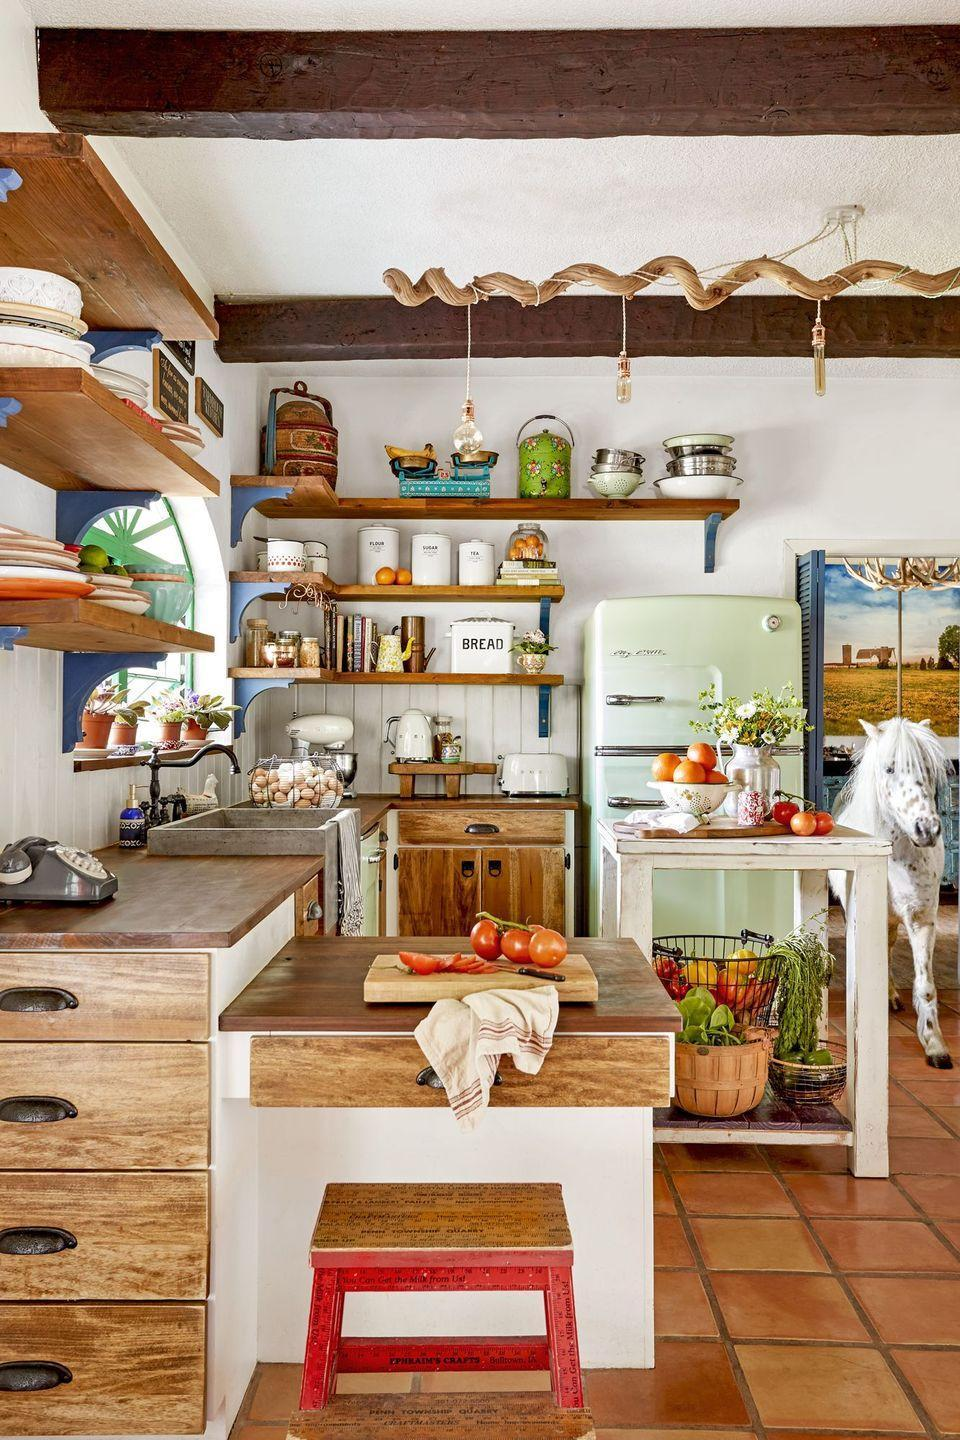 "<p>With stainless steel on the way out, color is making a big comeback. Take a cue from <a href=""https://www.countryliving.com/home-design/house-tours/g20888955/florida-home-horse-farm/"" rel=""nofollow noopener"" target=""_blank"" data-ylk=""slk:this homeowner's lively kitchen"" class=""link rapid-noclick-resp"">this homeowner's lively kitchen</a>, which features a retro-inspired <a href=""https://www.countryliving.com/home-design/color/g19811170/mint-green-home-decor/"" rel=""nofollow noopener"" target=""_blank"" data-ylk=""slk:mint green"" class=""link rapid-noclick-resp"">mint green</a> refrigerator and dishwasher, plus a series of Smeg countertop appliances.</p><p><a class=""link rapid-noclick-resp"" href=""https://www.amazon.com/Appliances-Smeg/s?rh=n%3A2619525011%2Cp_4%3ASmeg&page=3&tag=syn-yahoo-20&ascsubtag=%5Bartid%7C10050.g.3988%5Bsrc%7Cyahoo-us"" rel=""nofollow noopener"" target=""_blank"" data-ylk=""slk:SHOP COLORFUL APPLIANCES"">SHOP COLORFUL APPLIANCES</a></p>"